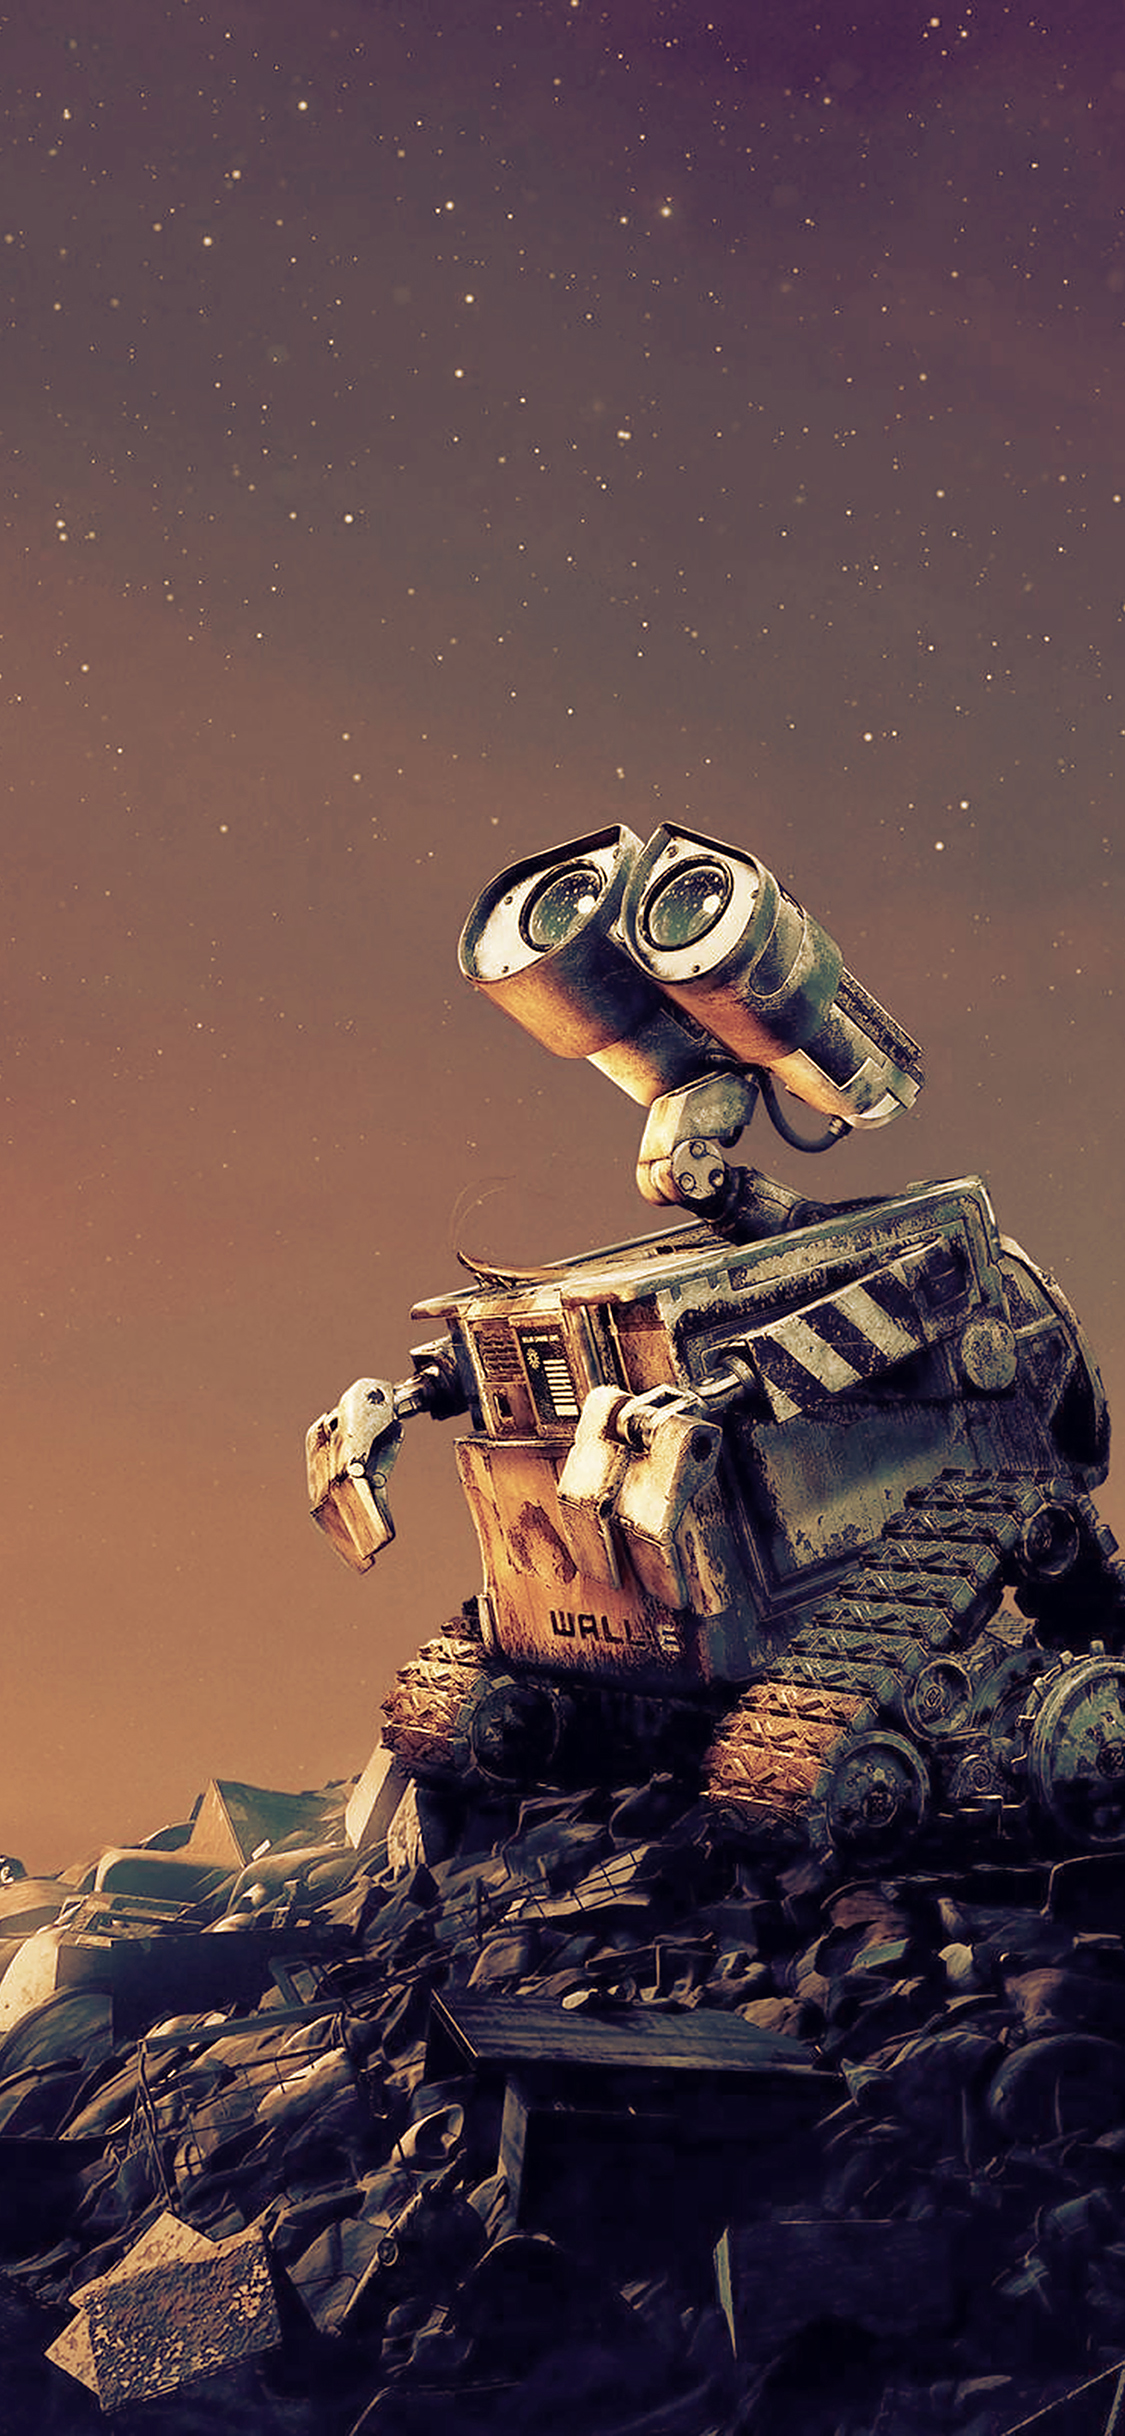 iphonepapers - ag67-wall-e-disney-want-go-home-red-art